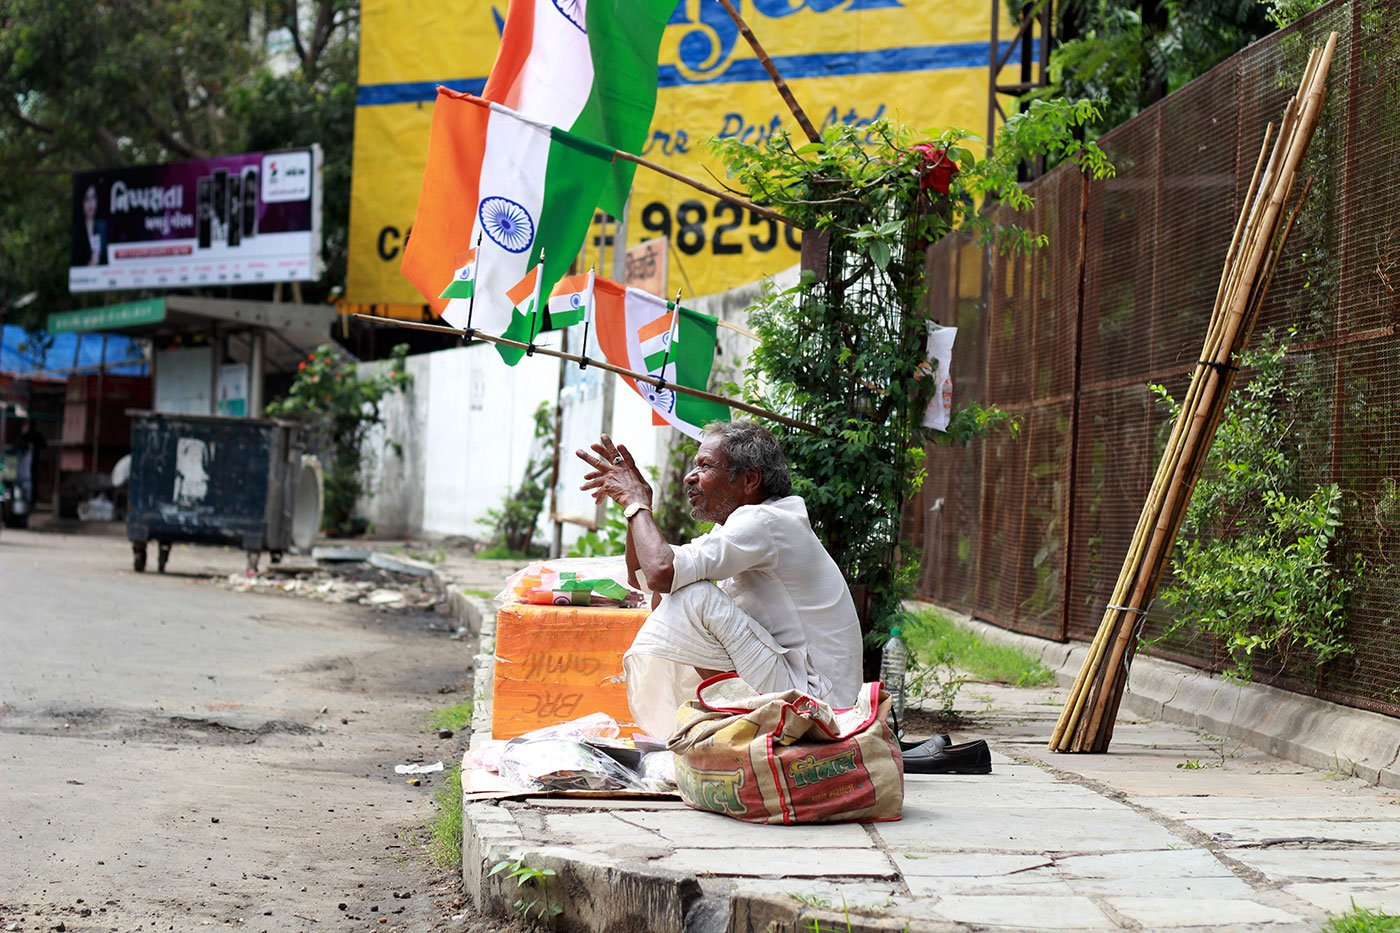 Chiranjilal Bagariya, in his 60s, is the oldest flag-seller on these streets